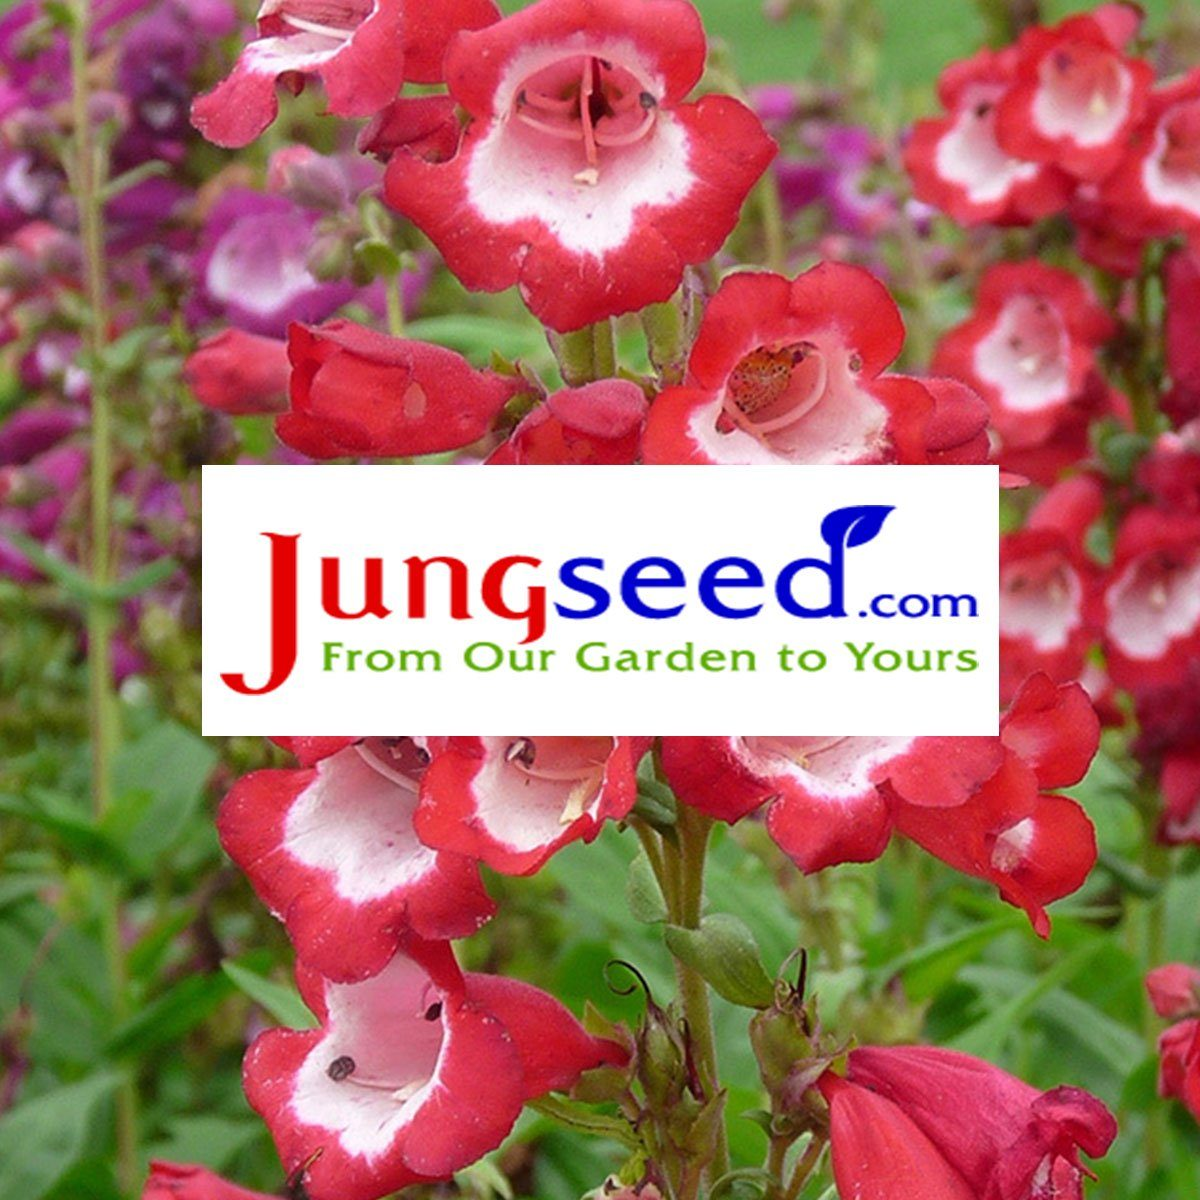 jungseed